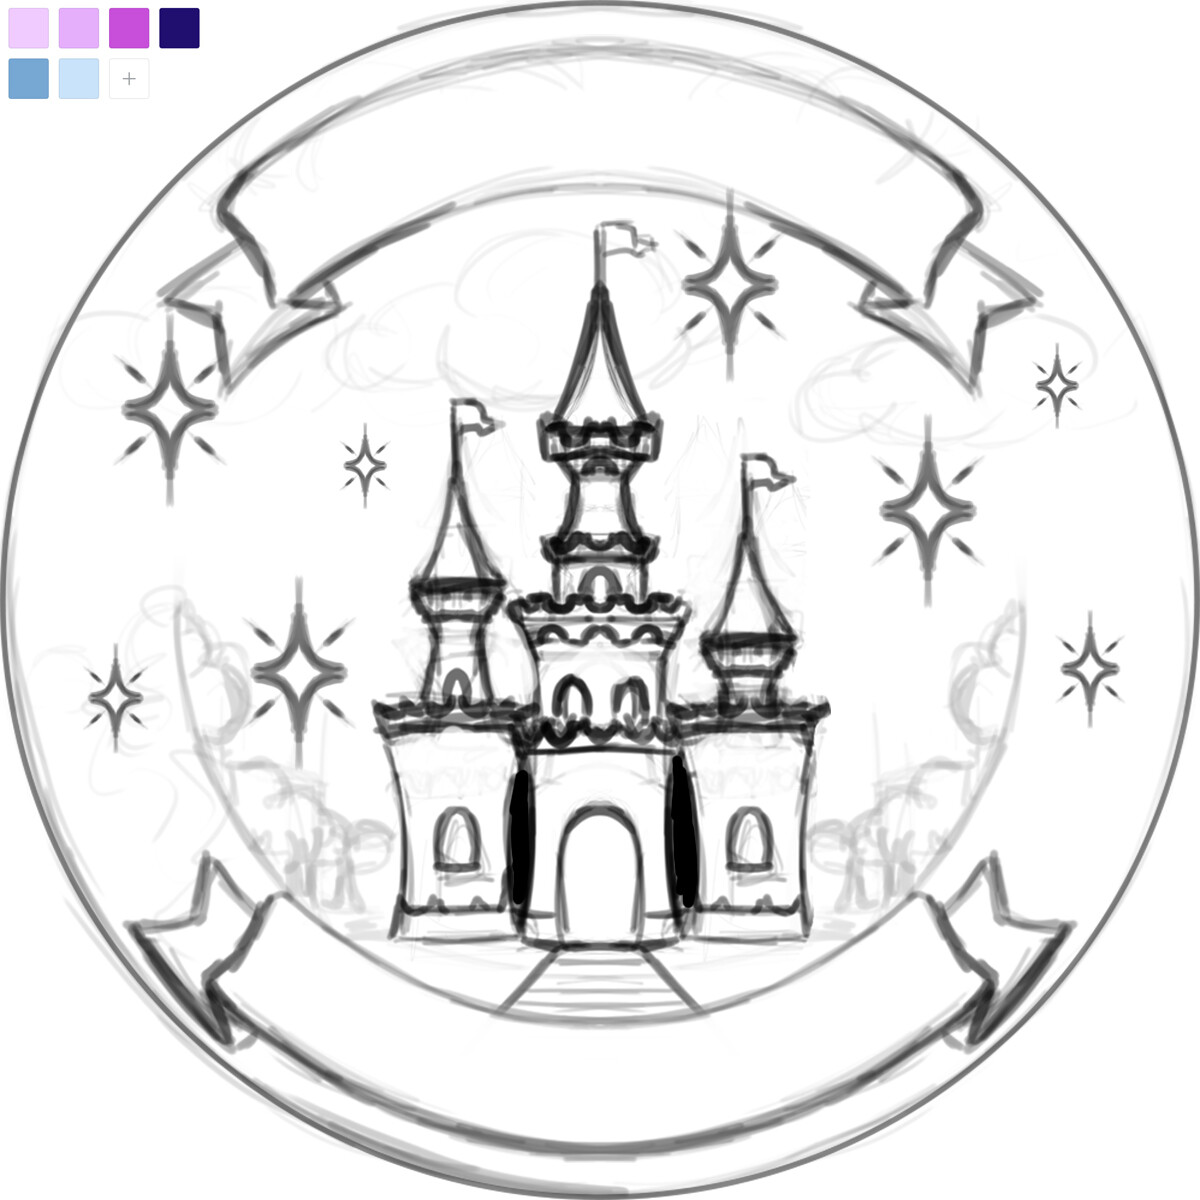 Creating Ever After sketch for the customer based on their description.